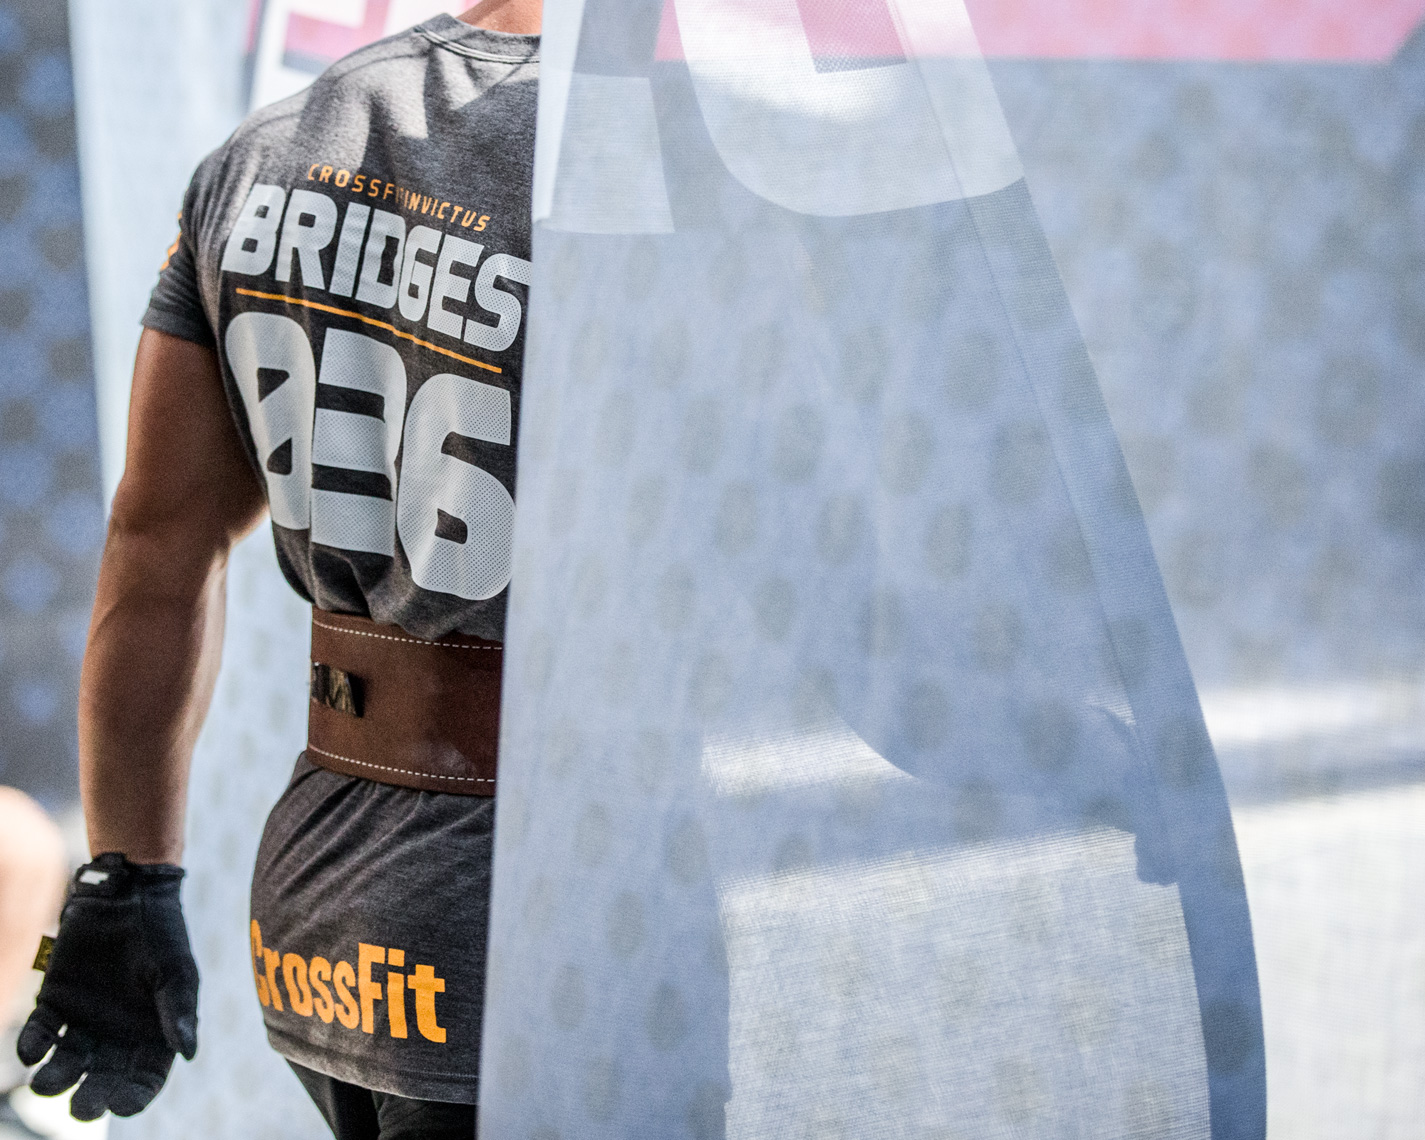 Los Angeles Sports Photography, Michael Brian, Josh Bridges, Nike, Reebok Crossfit Games athlete, enters arena for final event, Rogue, StubHub Center